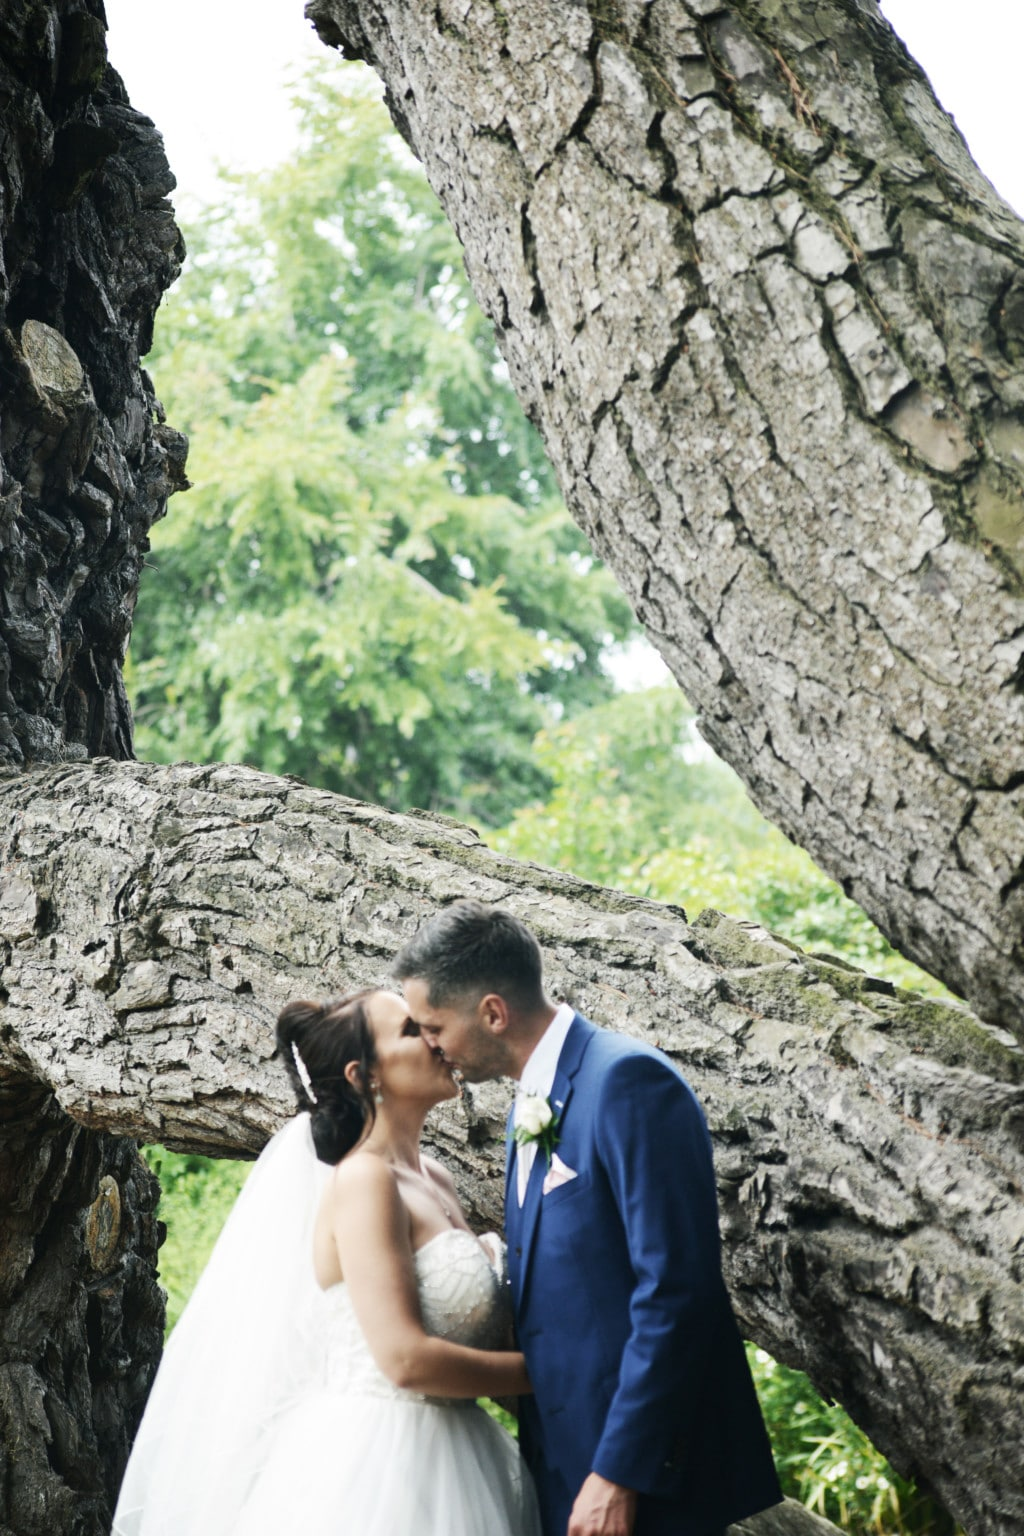 Bride and Groom kissing by a tree at Exeter wedding venue in Devon